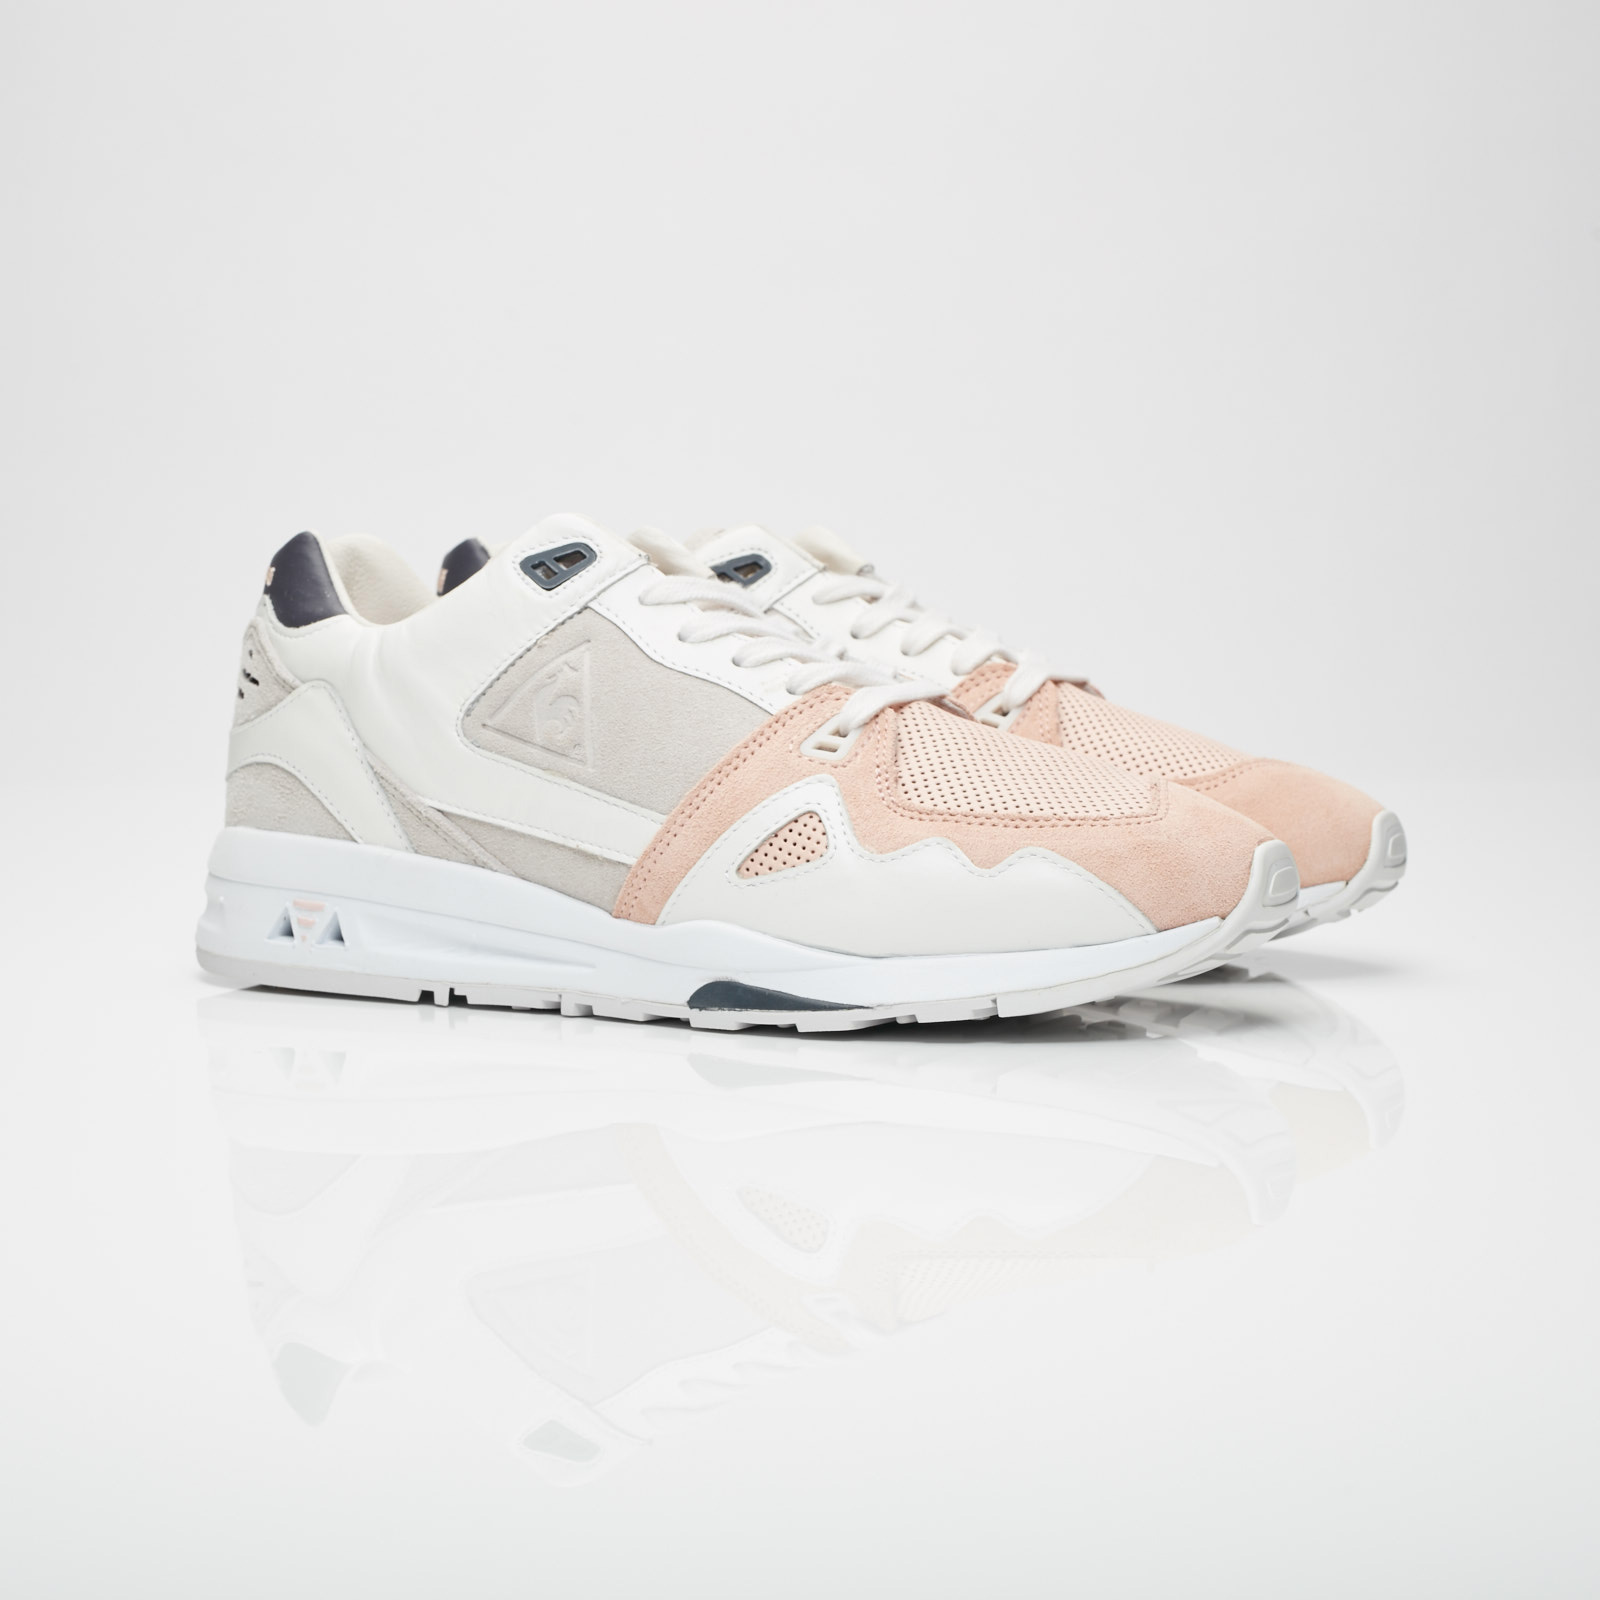 e482c395c347 Le Coq Sportif R1000 x Highs And Lows - 1810824 - Sneakersnstuff ...